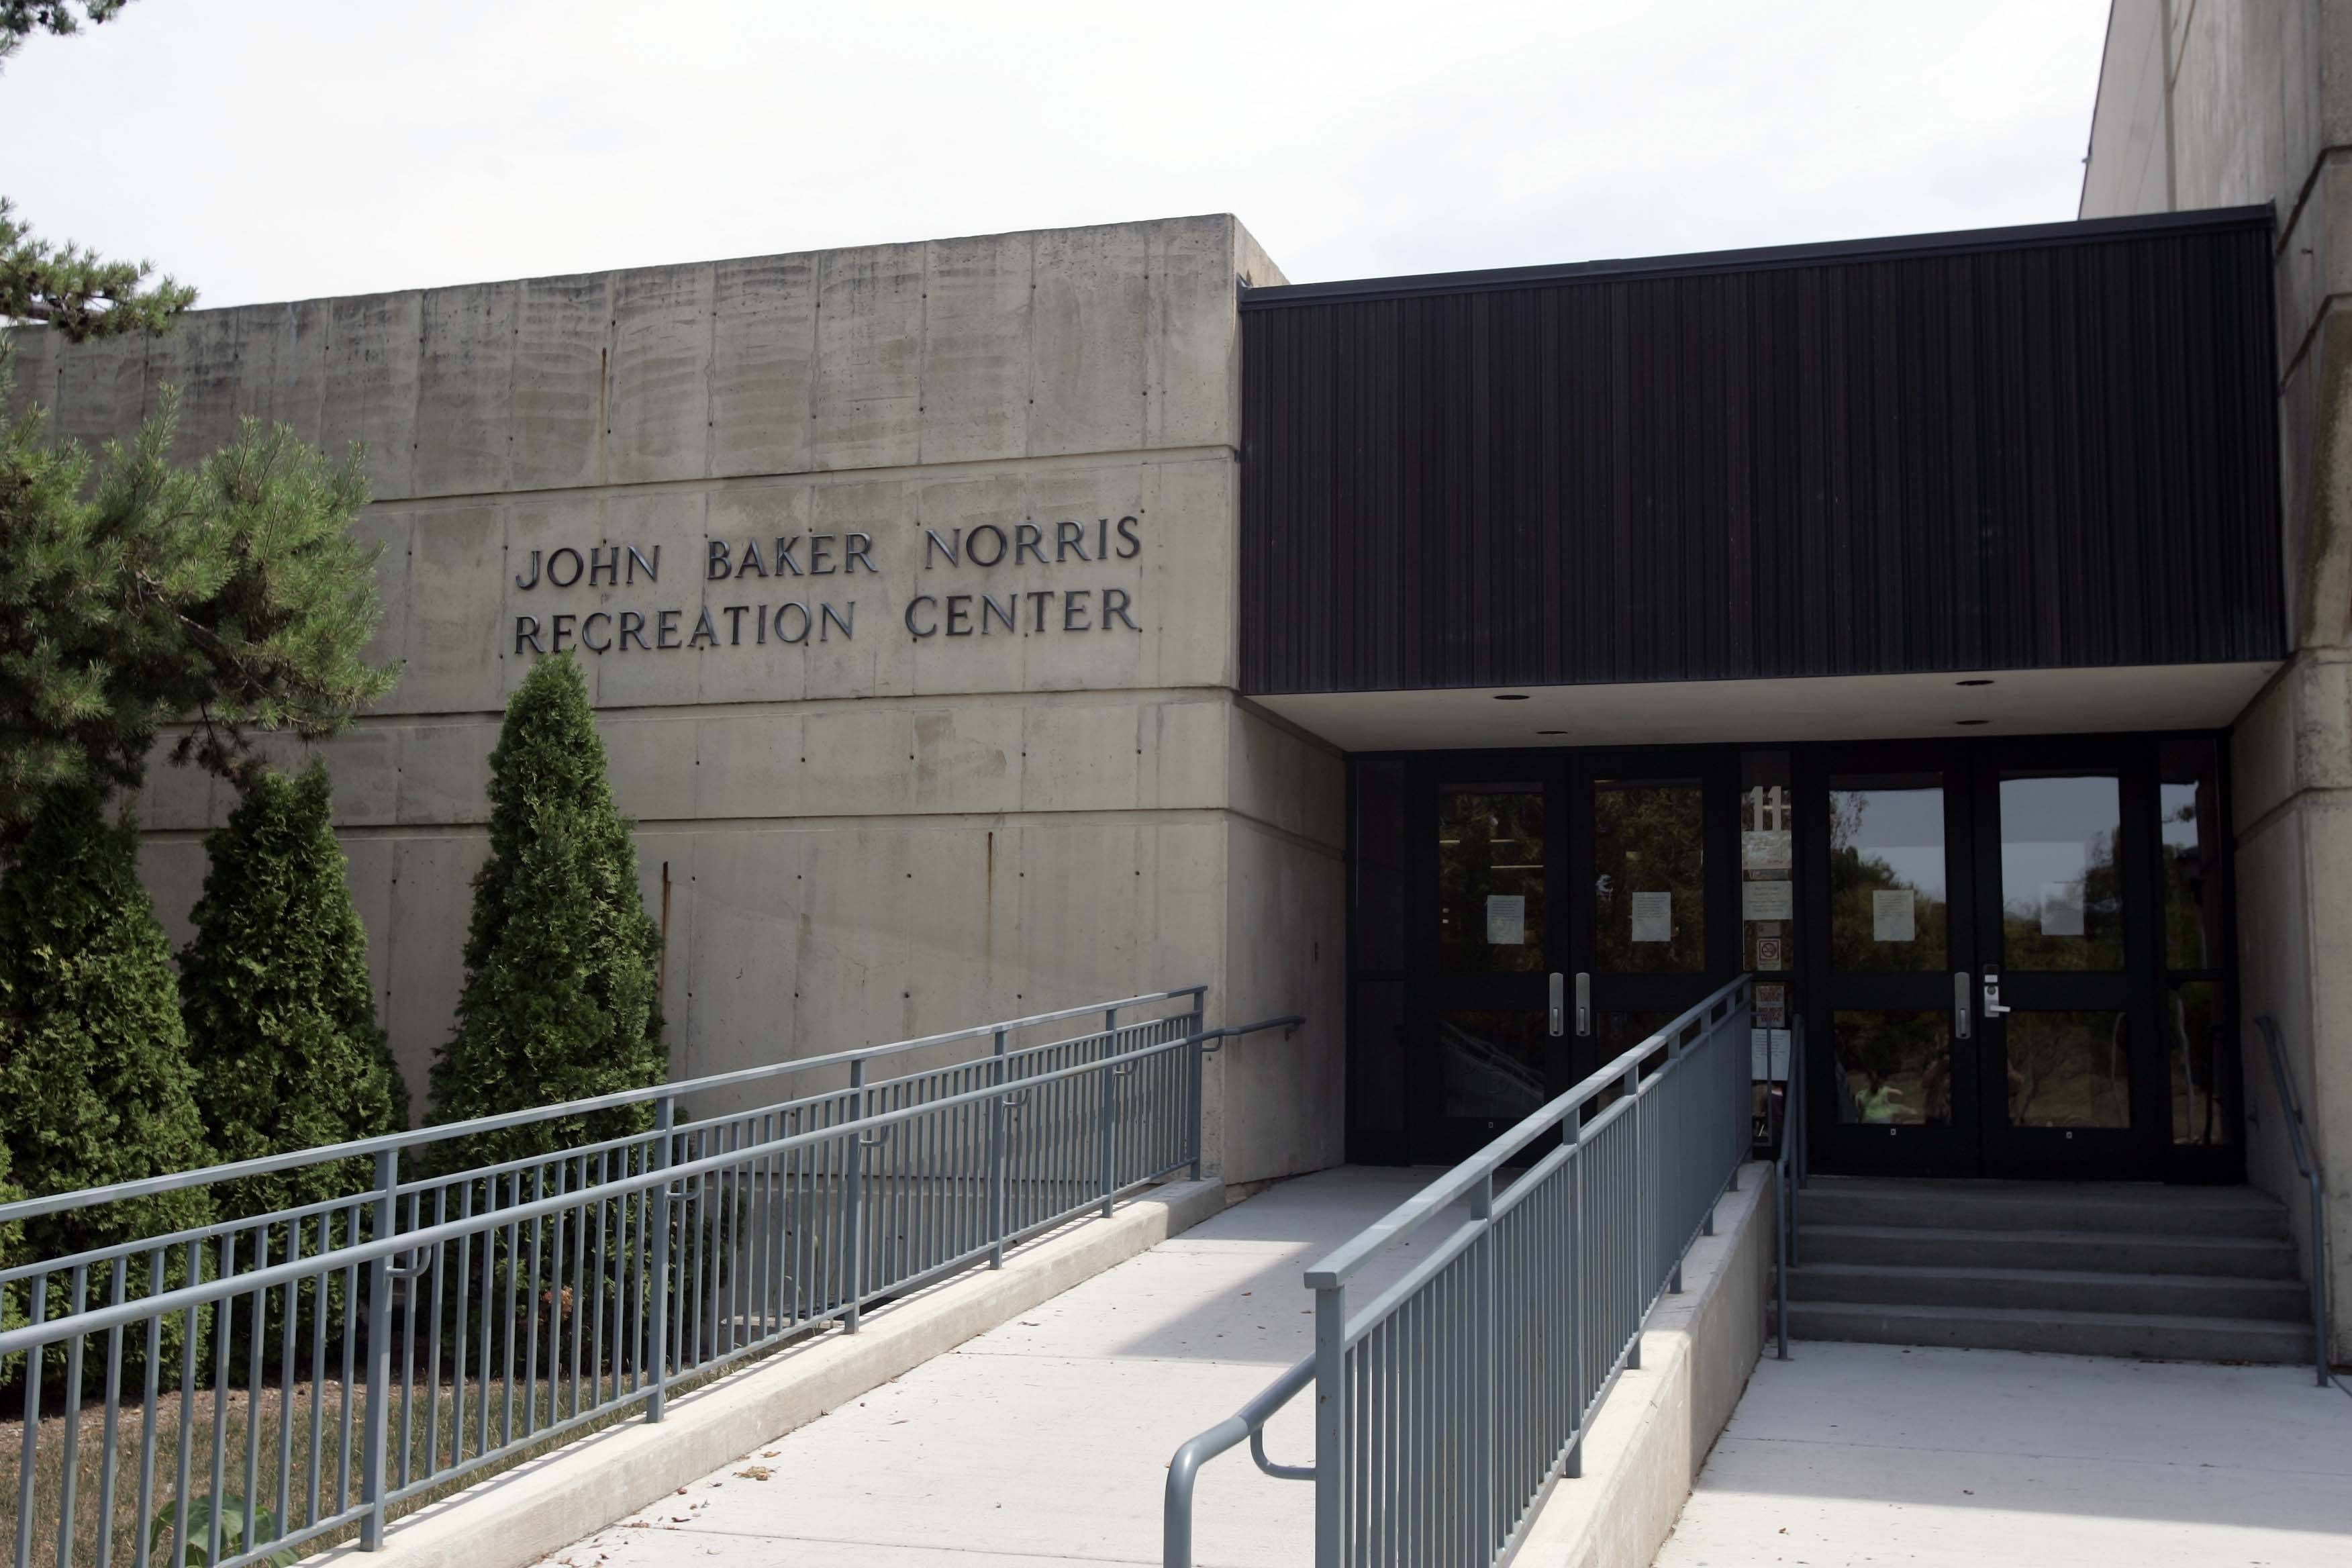 The Norris Recreation Center will cease operations of the business model it has always existed under as of July 1. Failing finances has led the St. Charles Park District to take over operations.